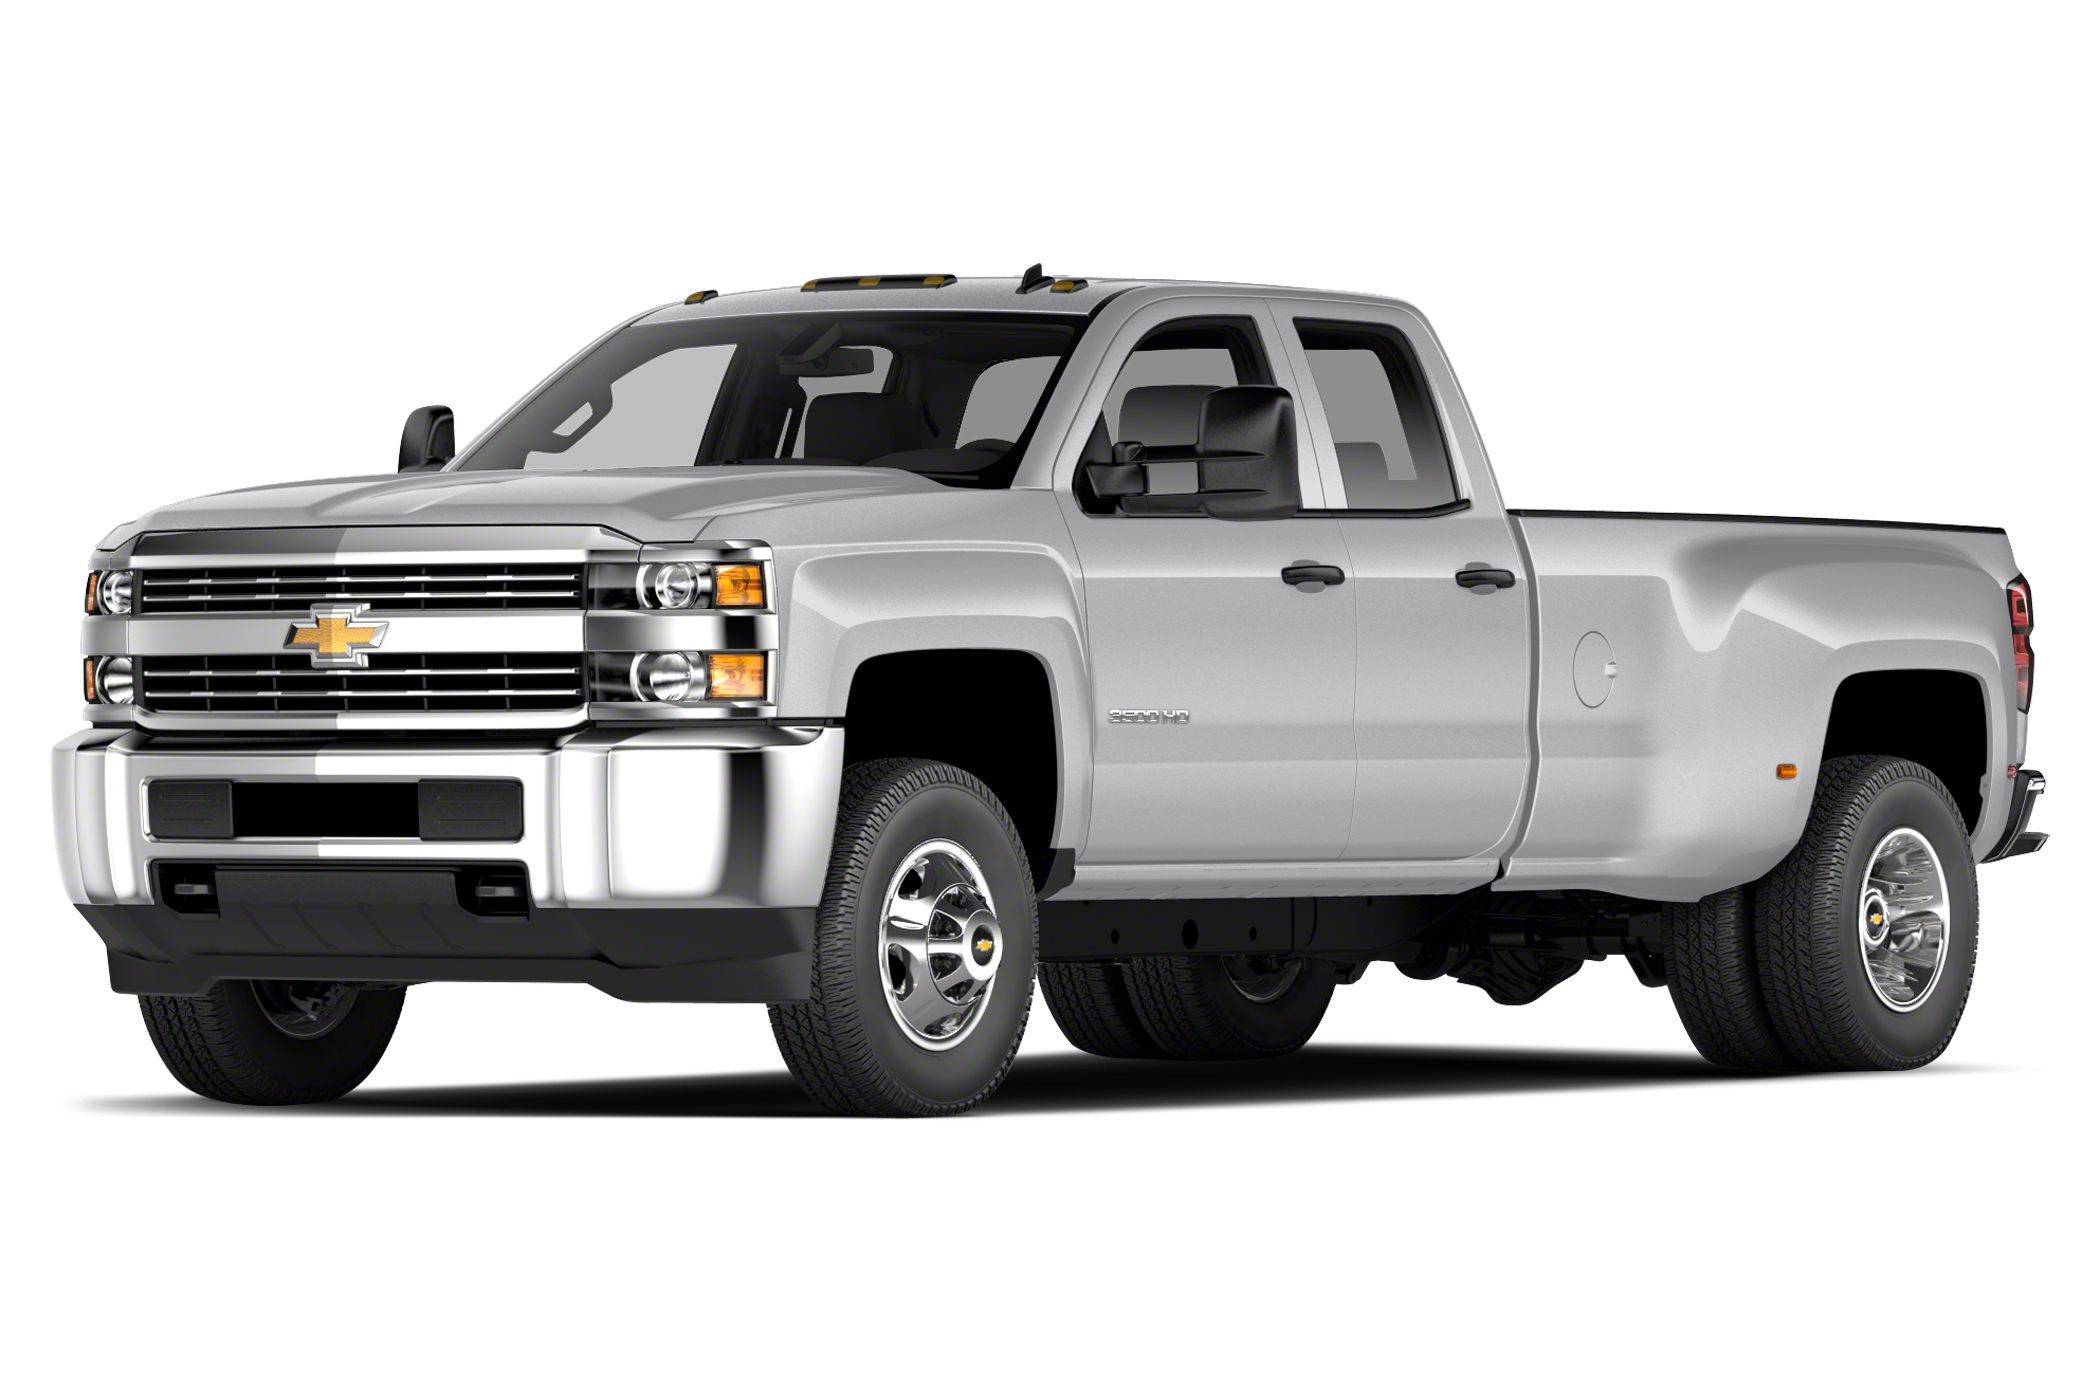 2017 Chevrolet Silverado 3500 Reviews, Specs and Prices ...